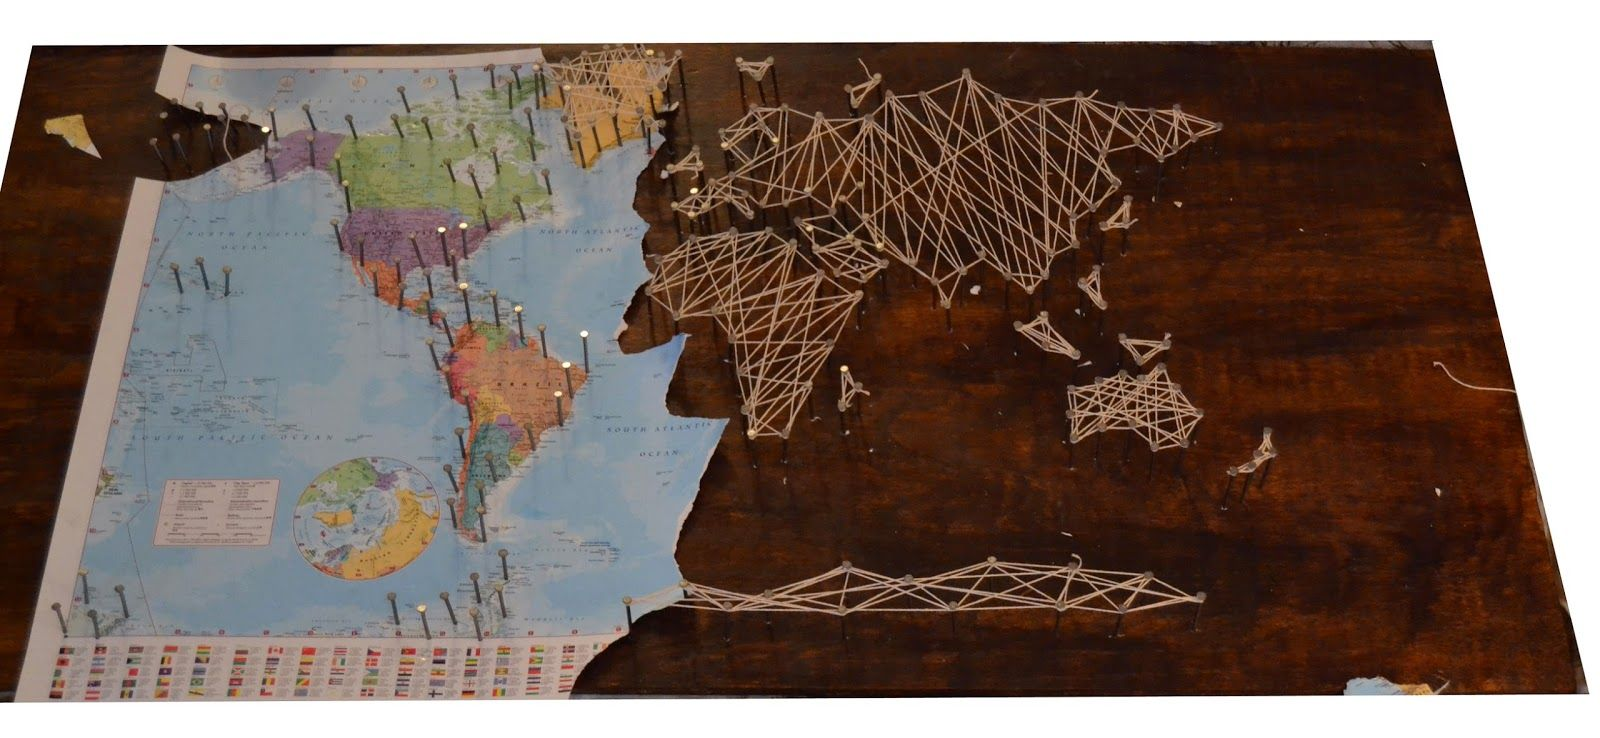 DIY: String Art World Map | Ideas for the House | Pinterest | String ...